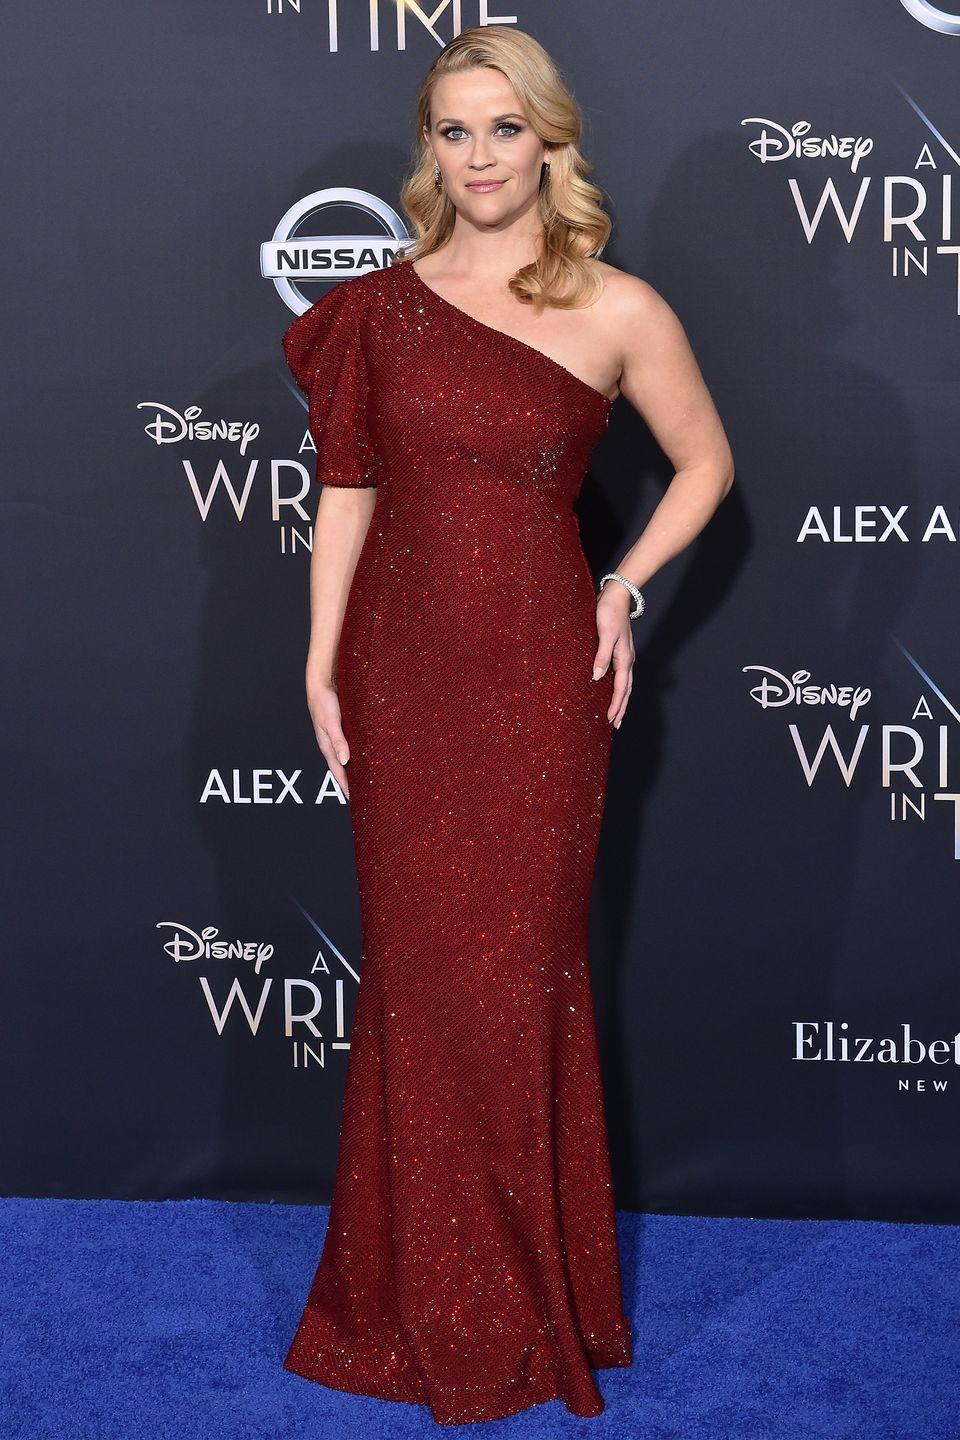 <p>Witherspoon pulled out the stops in a ruby red sequin Tom Ford gown for the premiere of the highly anticipated <em>A Wrinkle in Time. </em></p>